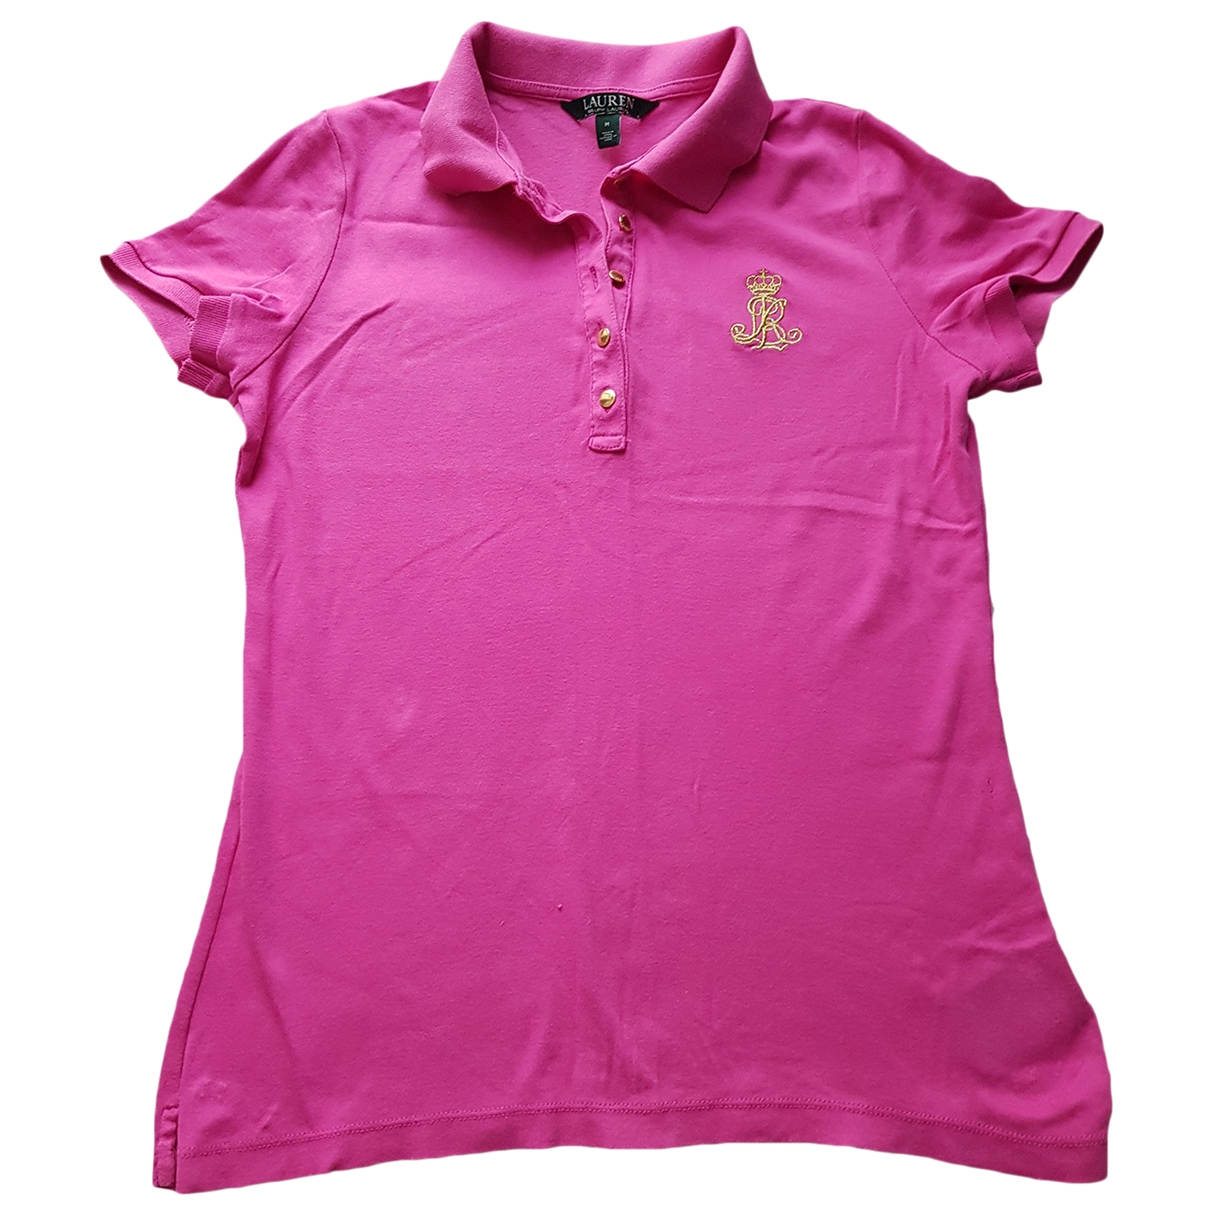 Lauren Ralph Lauren \N Pink Cotton  top for Women M International